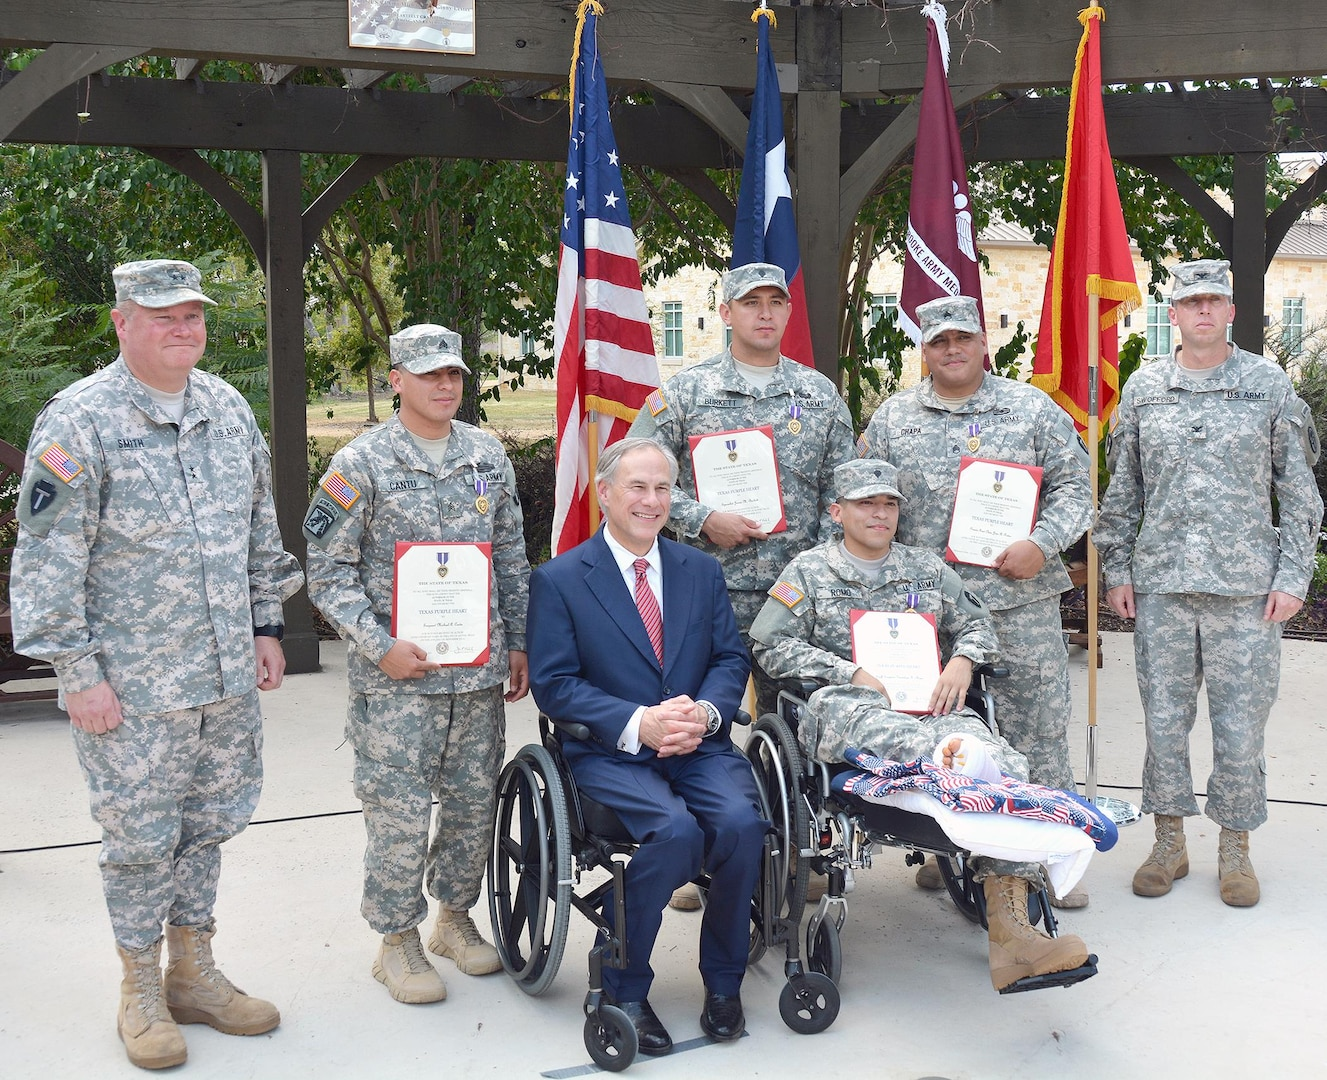 (Standing, from left) Maj. Gen. William L. Smith, Sgt. Michael Cantu, Spc. James Burkett, Staff Sgt. Guadalupe Chapa and Col. Mark Swofford, join Texas Gov. Greg Abbott and Spc. Jose Romo (seated) pose for a photo after the Texas Purple Heart ceremony Sept. 24 at the Warrior and Family Support Center's Purple Heart Garden on Fort Sam Houston. Smith is the Army assistant adjutant general and commander of the Texas Army National Guard and Swofford is the Brooke Army Medical Center deputy commander for administration.